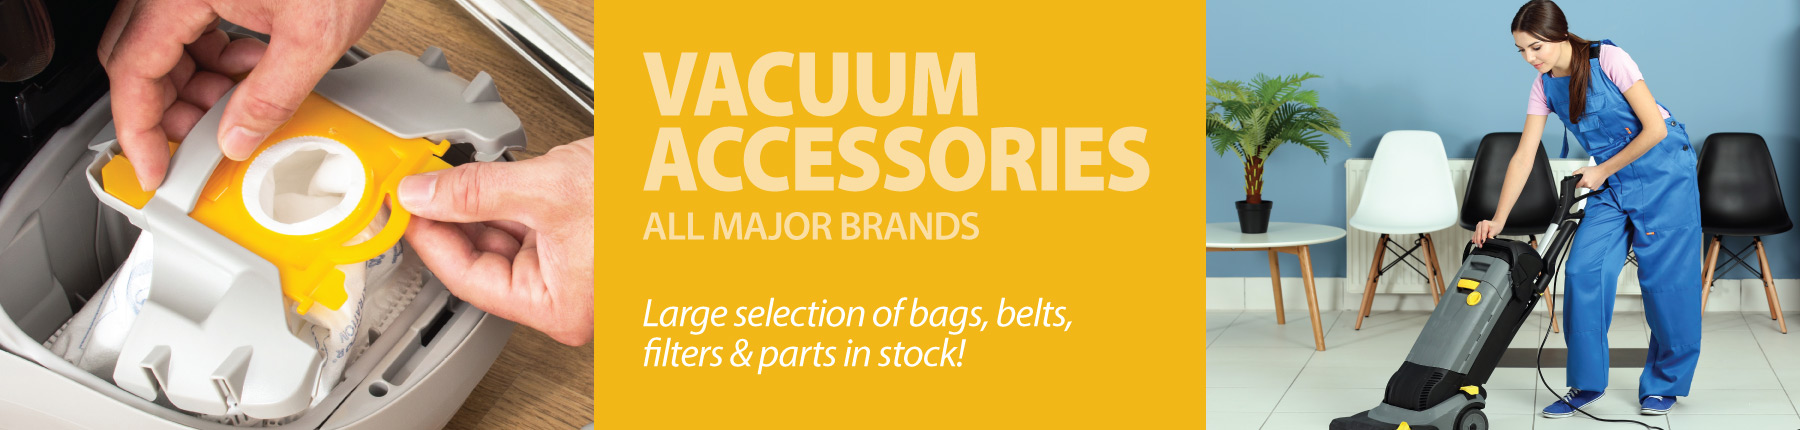 Home Slider - Vacuum Accessories